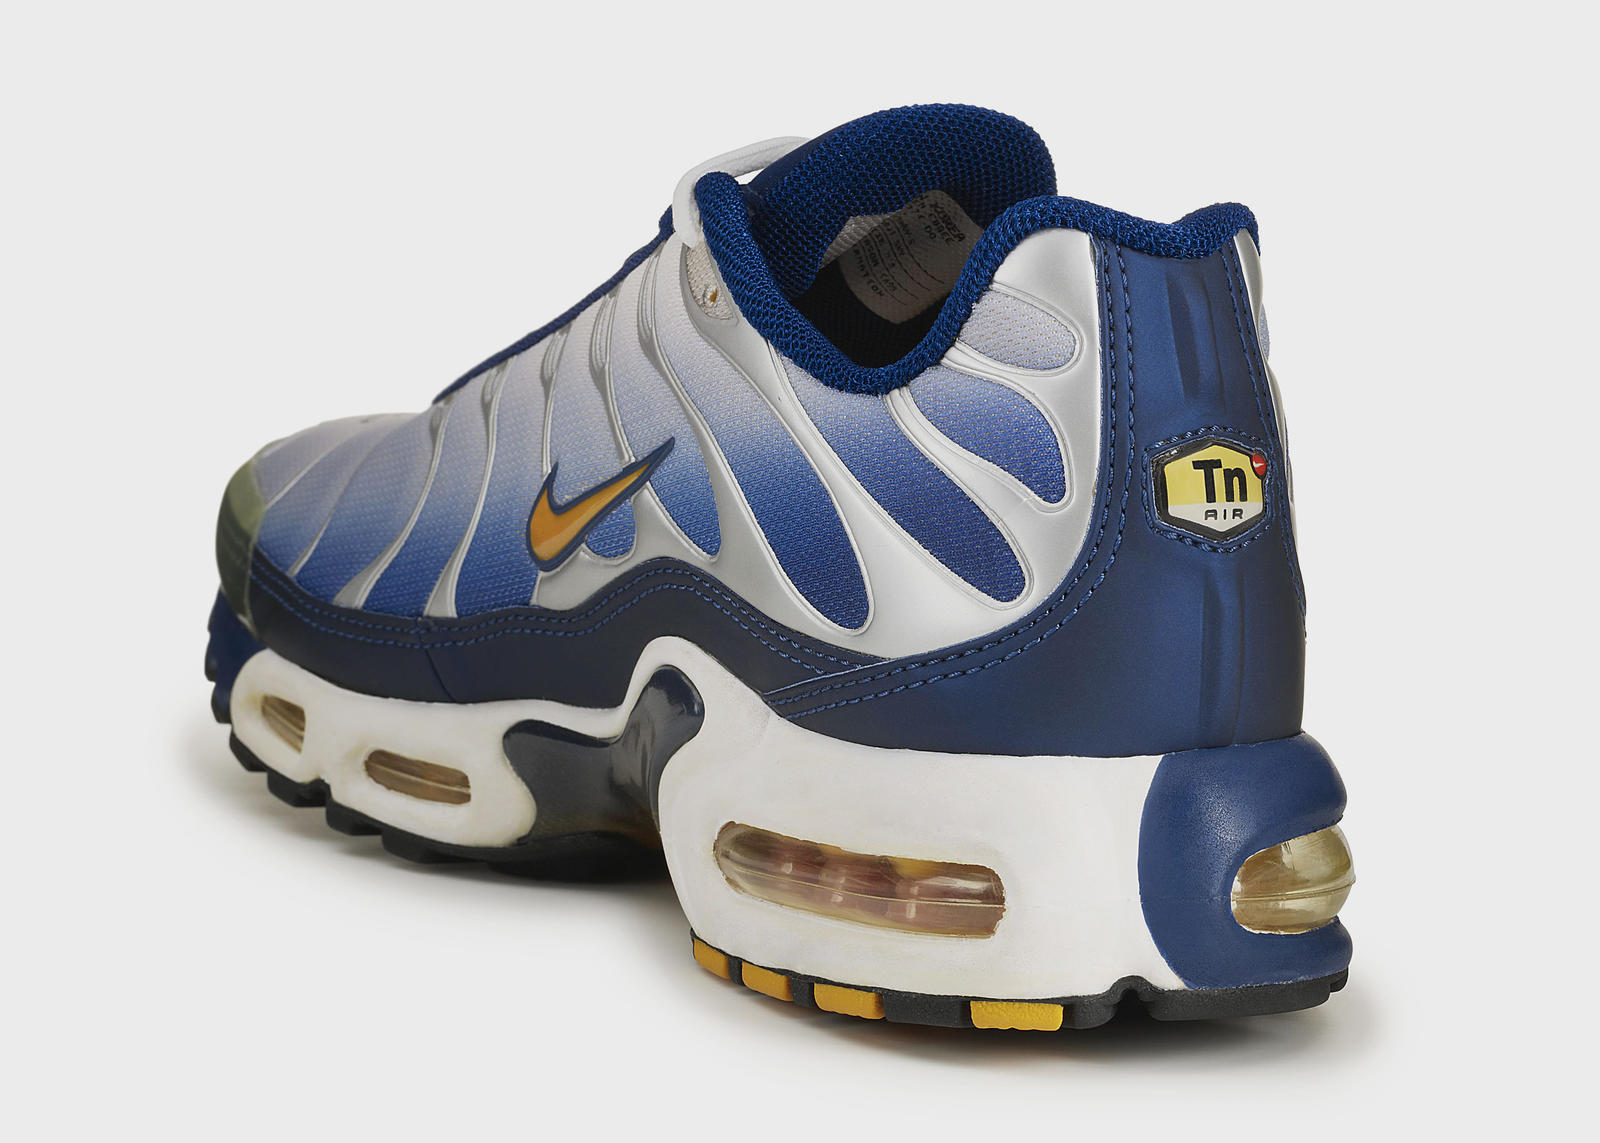 625c4cbedf The Untold Story of the Nike Air Max Plus 31